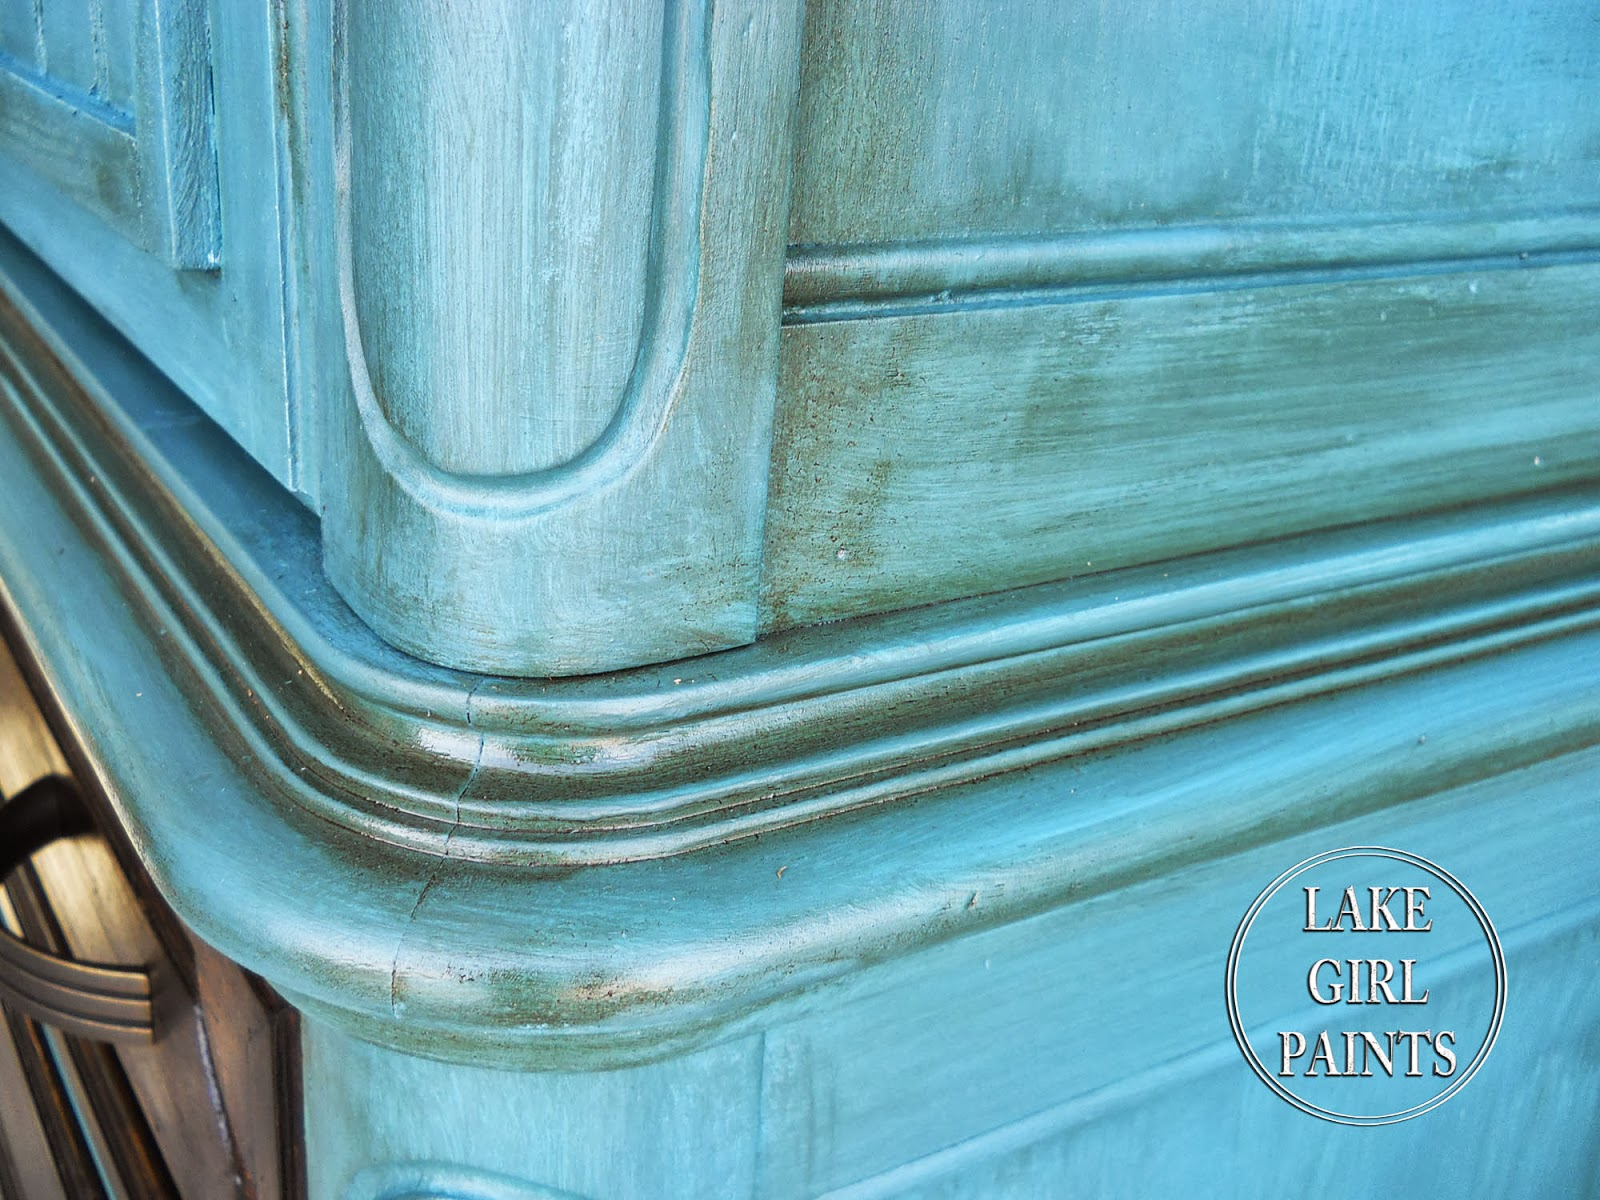 ... Girl Paints: Old Entertainment Center gets Beadboard Trendy Makeover